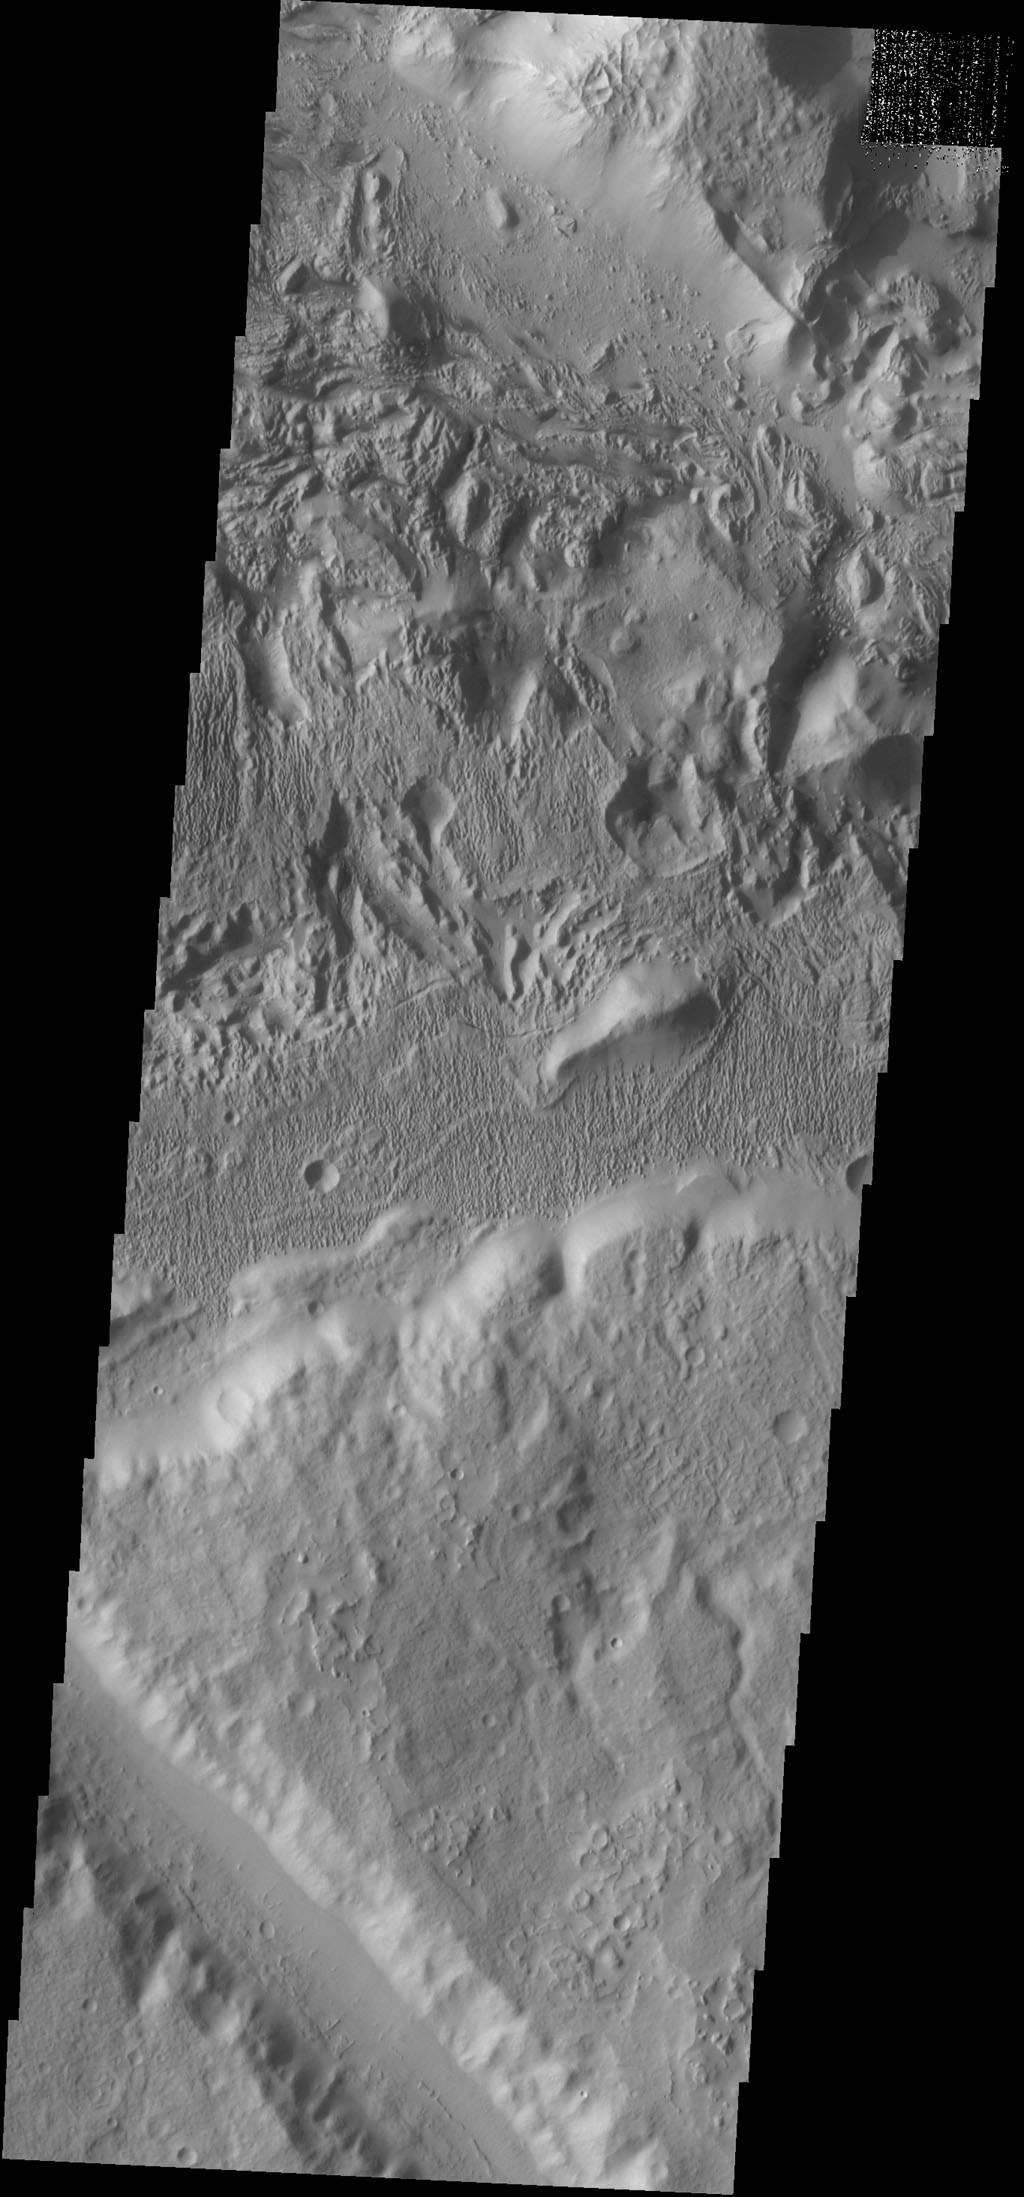 The surface textures located southeast of Aeolis Planum likely had wind action as one of the contributing processes, as shown by NASA's 2001 Mars Odyssey spacecraft.